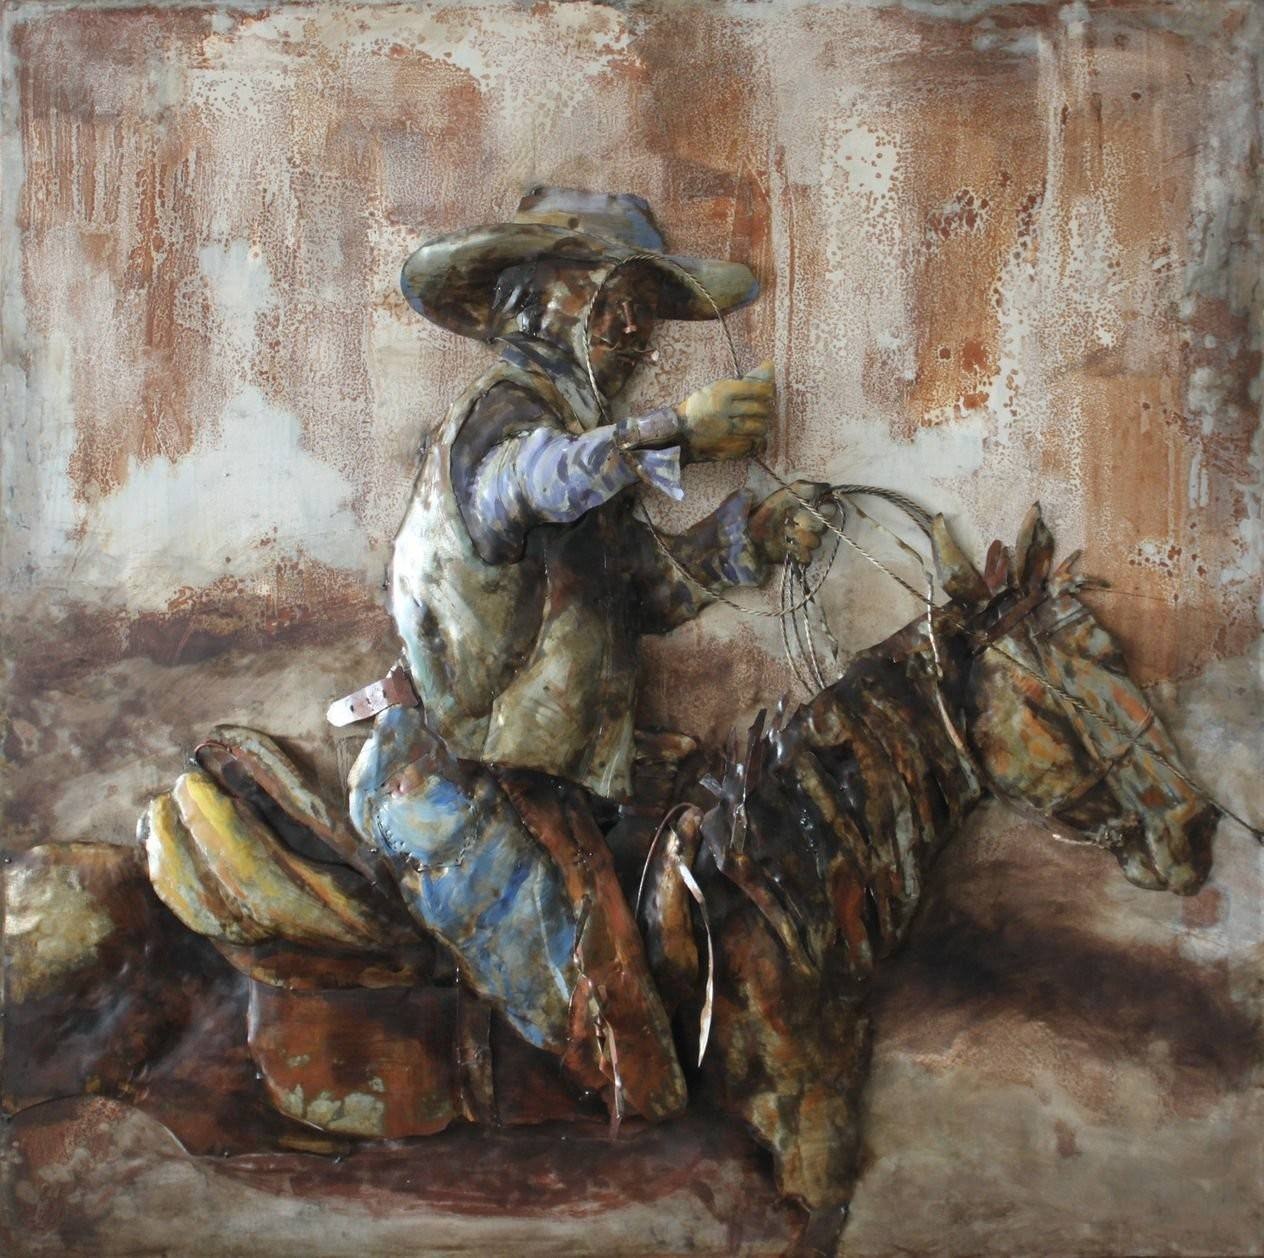 Cowboy Horse Side 3D Metal Wall Art Hand Painted In Latest 3D Metal Wall Art (View 7 of 20)